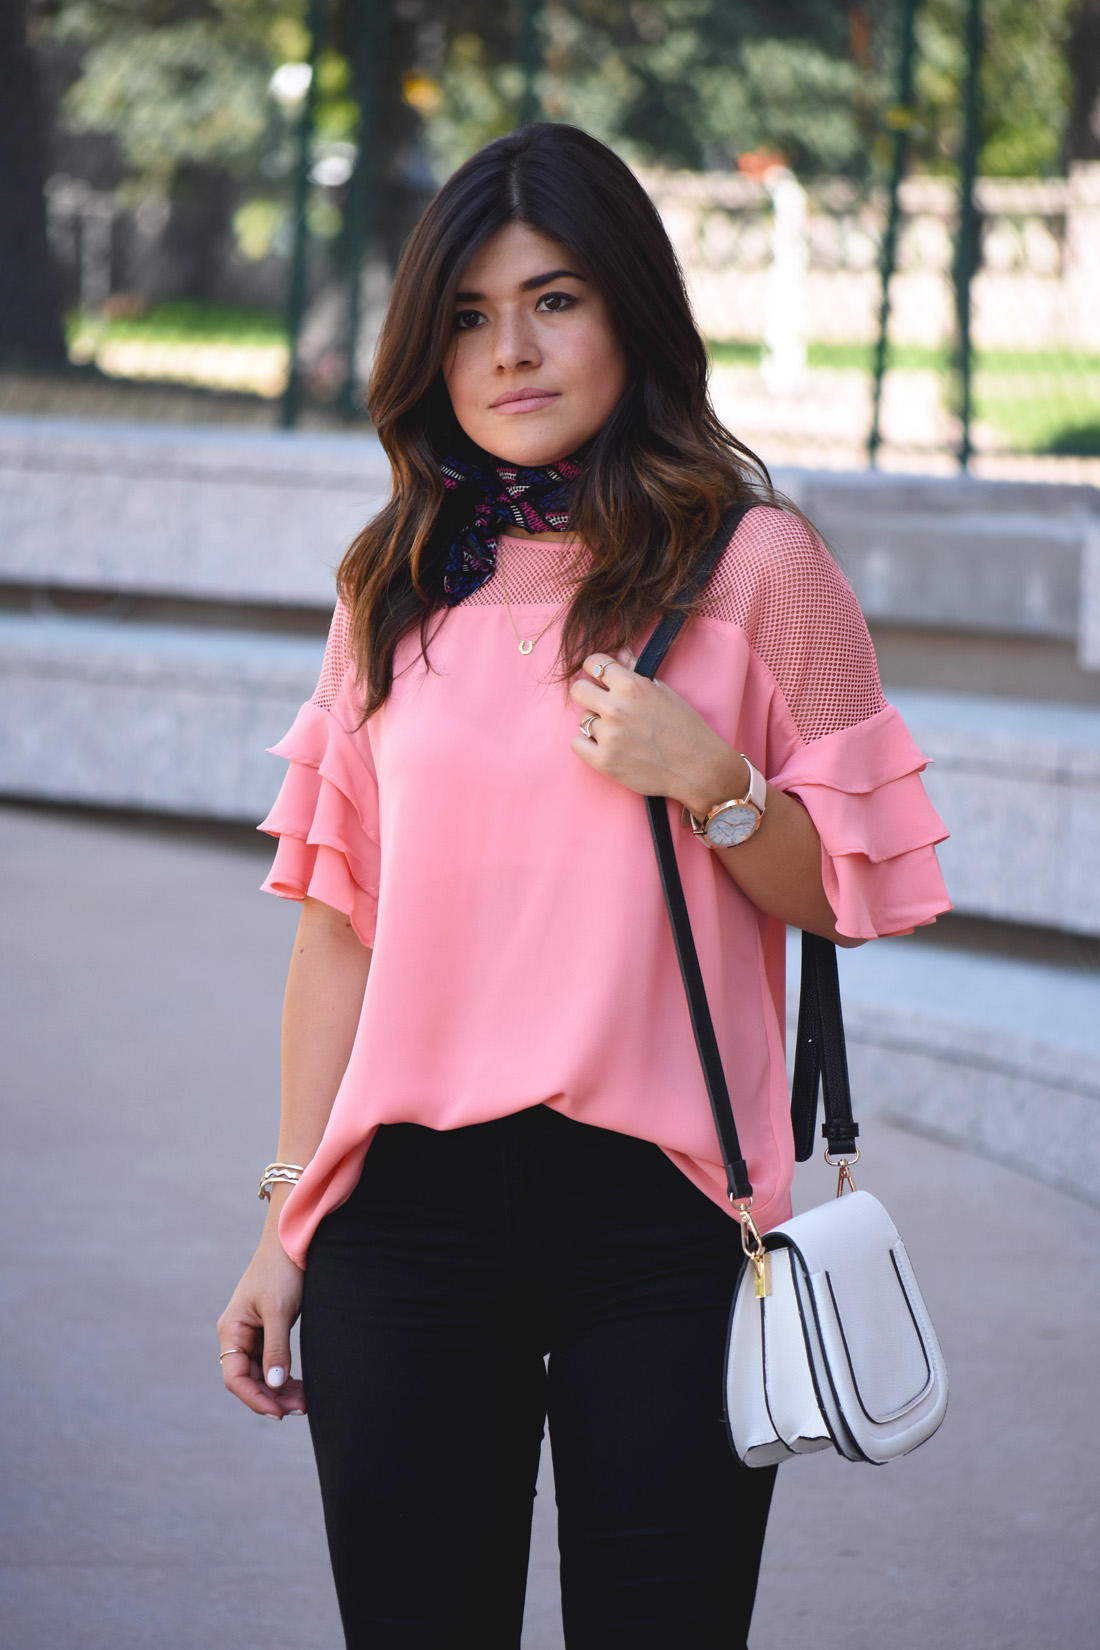 Carolina Hellal of Chic Talk wearing a VIPme pink top with ruffles and mesh.